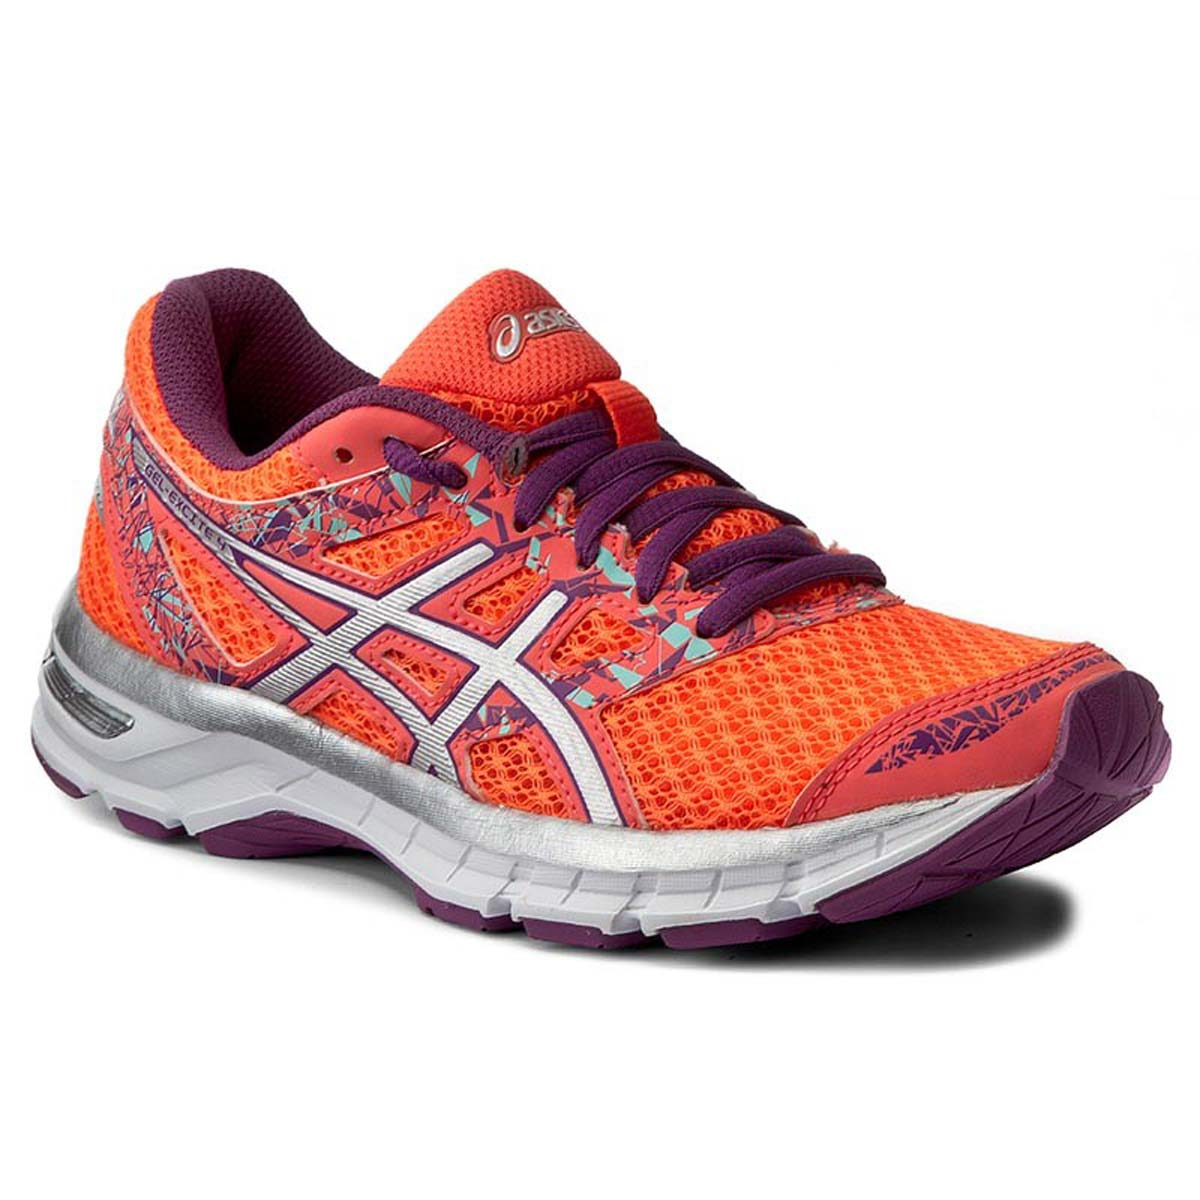 b6b63c47d1de1 Buy Asics Gel-Excite 4 Running Shoes (Coral/Silver/Orchid) Online